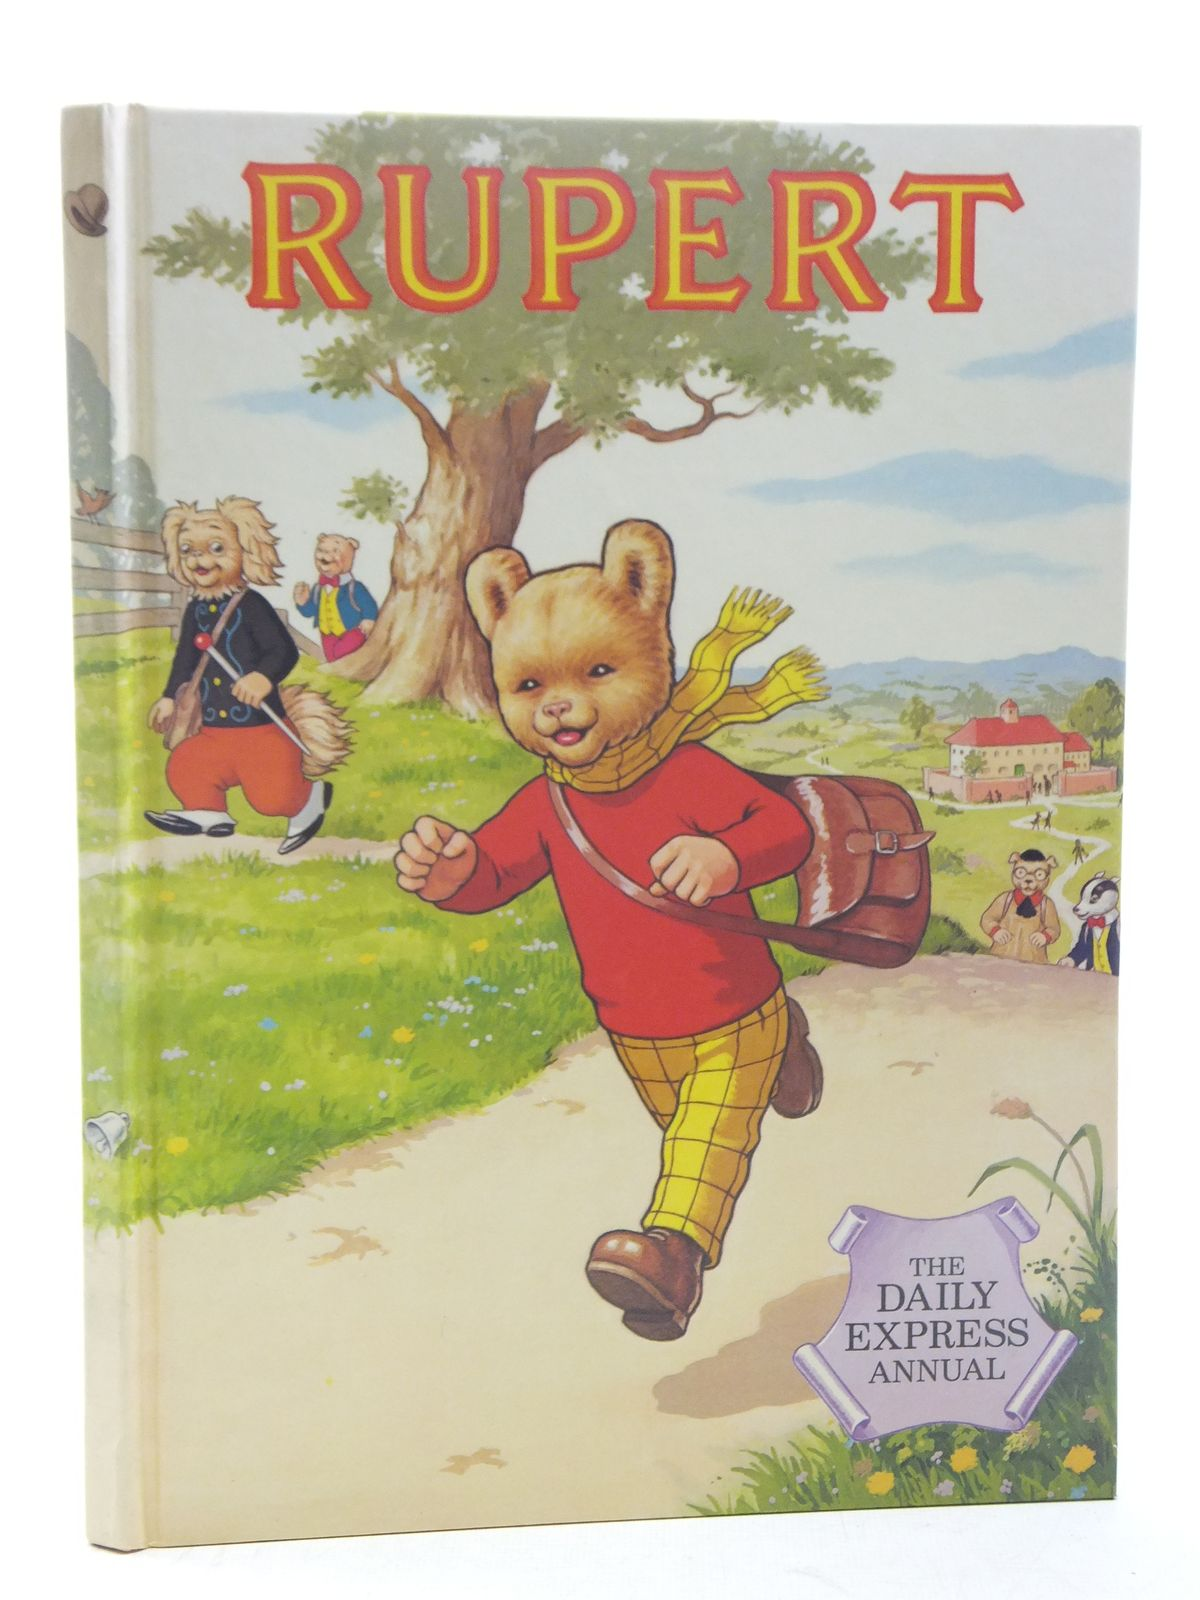 Photo of RUPERT ANNUAL 1984 illustrated by Harrold, John published by Express Newspapers Ltd. (STOCK CODE: 2117159)  for sale by Stella & Rose's Books